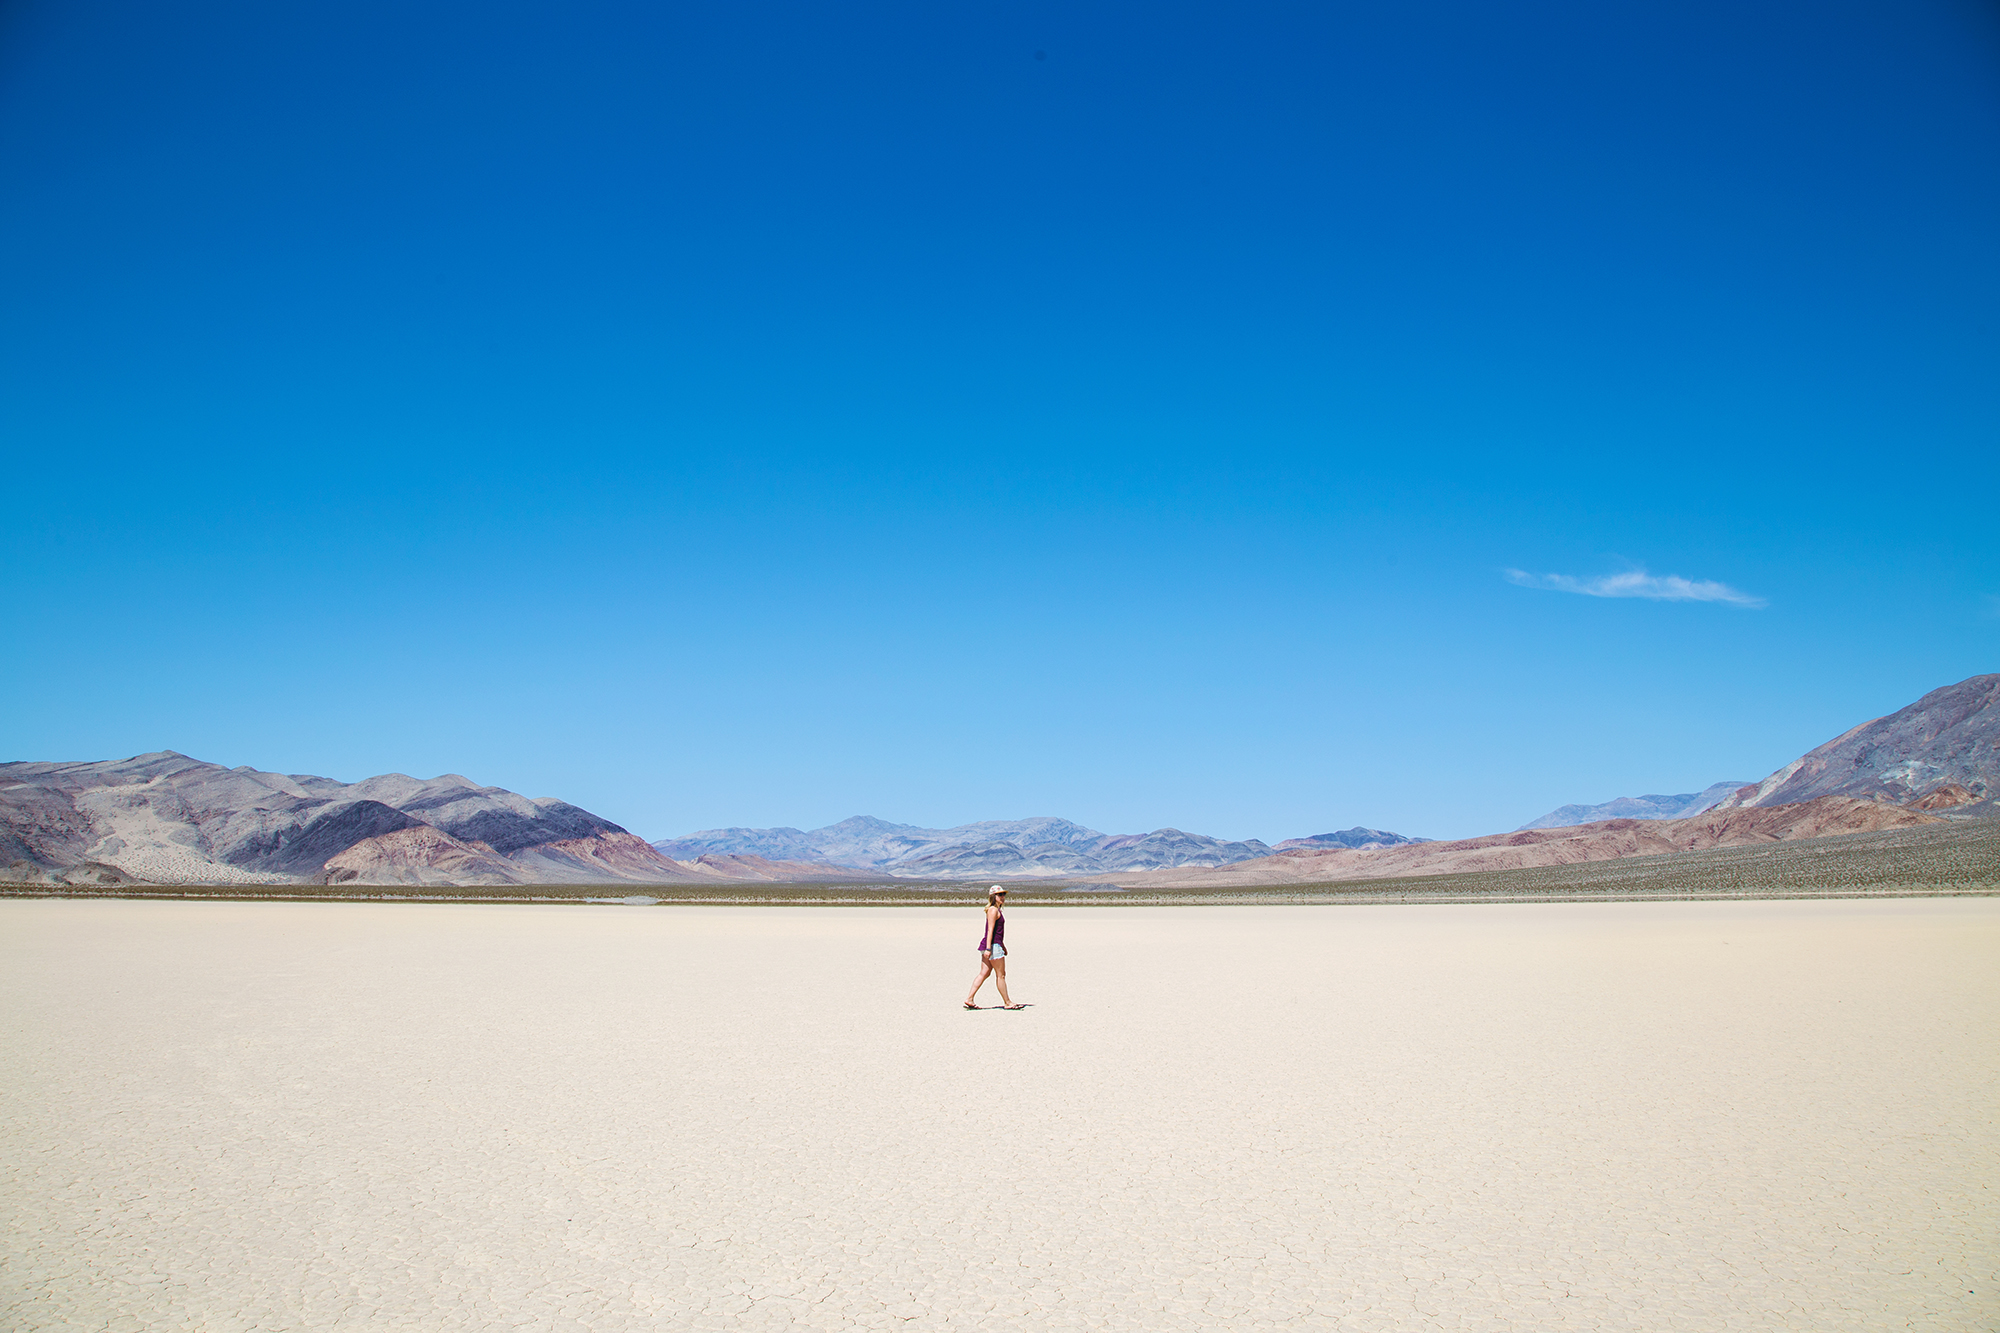 Death Valley National Park - How She Views It - Laura Hughes